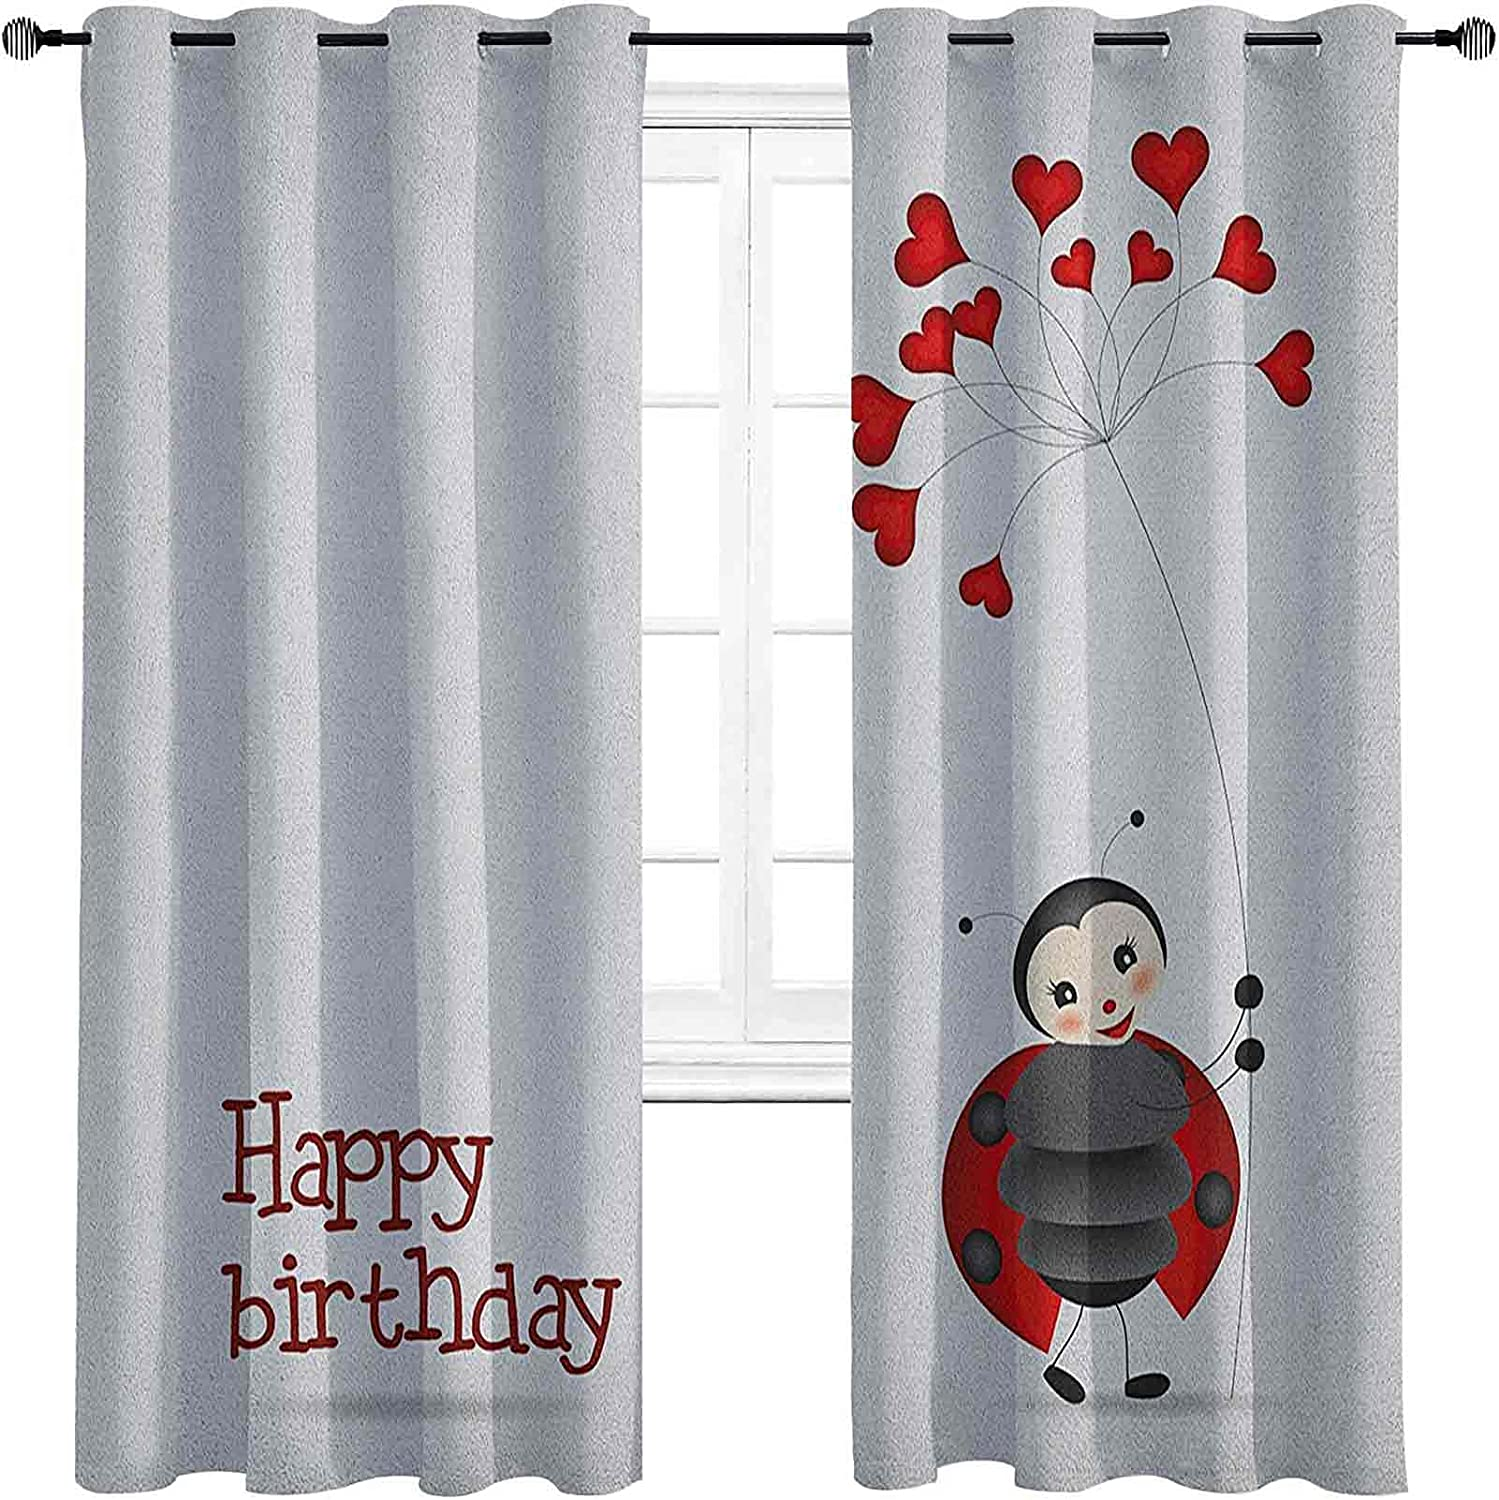 Kids Birthday High-Strength Excellent Blackout Ladybug Weekly update Wings Curtains Flo